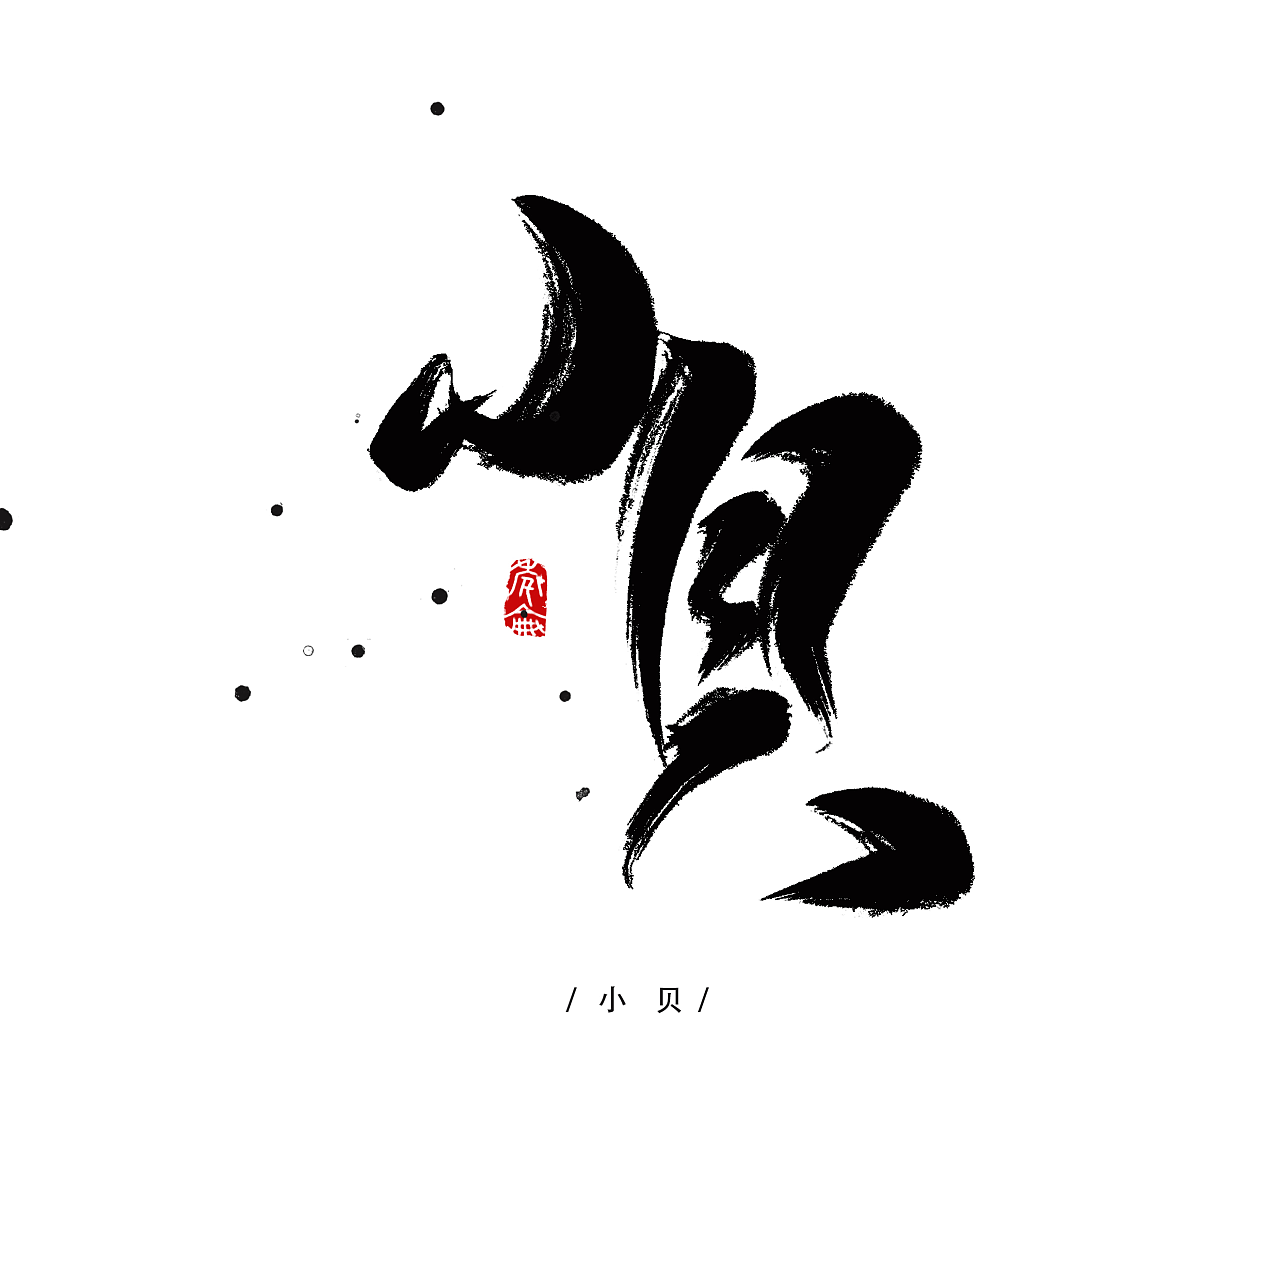 chinesefontdesign.com 2017 09 12 05 58 32 138723 16P Chinese traditional calligraphy brush calligraphy style appreciation #.21